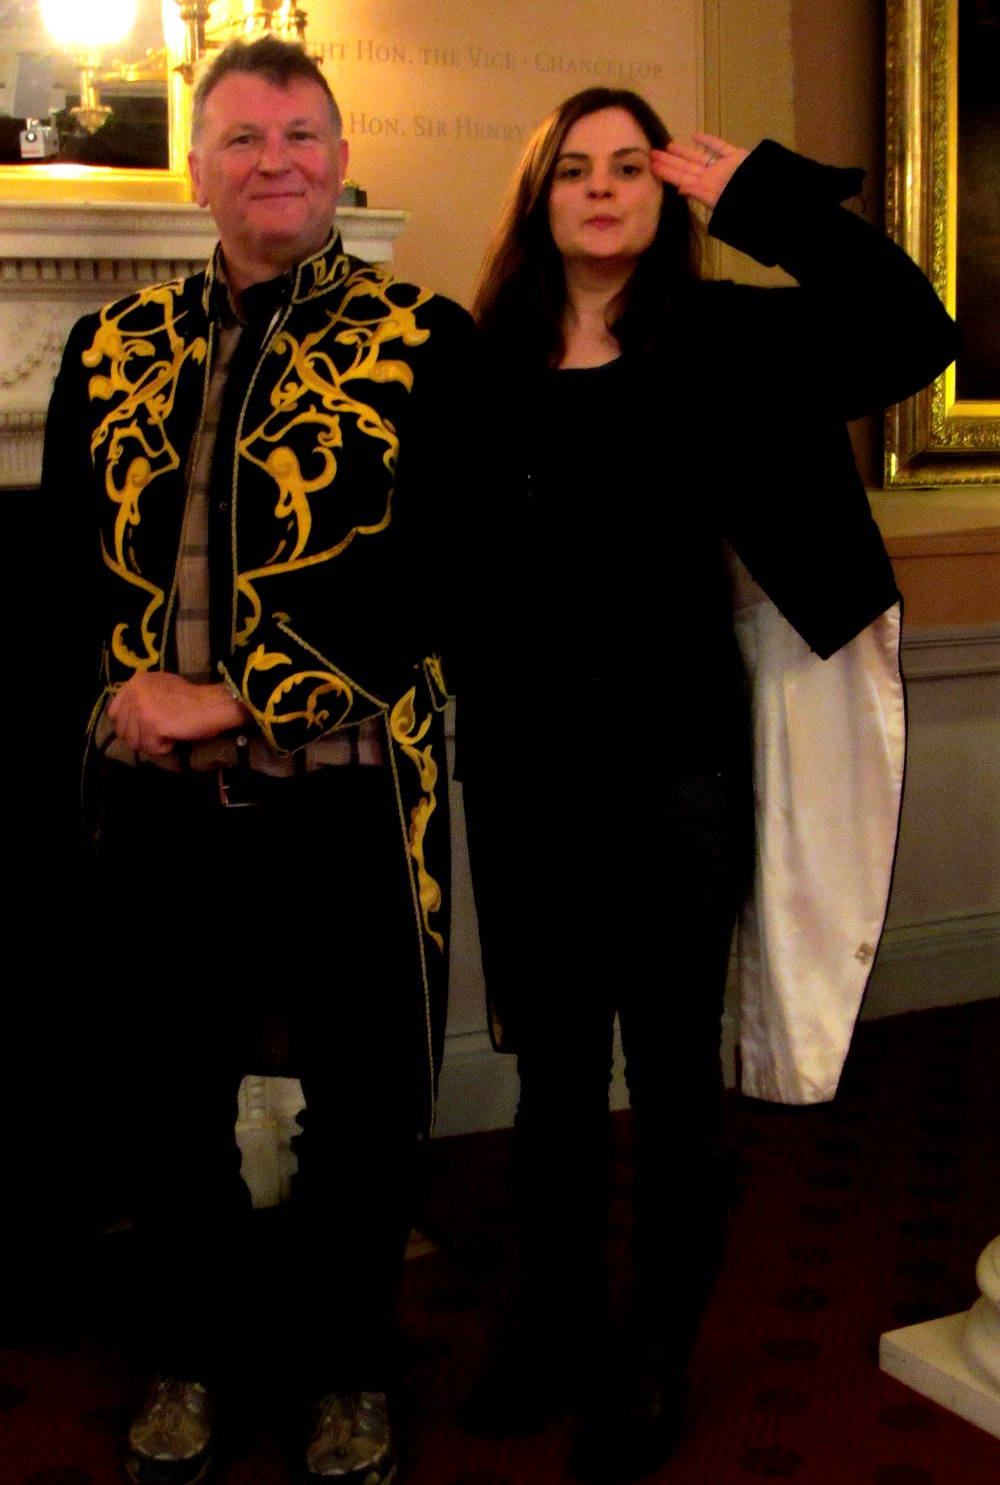 trying on costumes at Kensington Palace Double Barrelled Travel